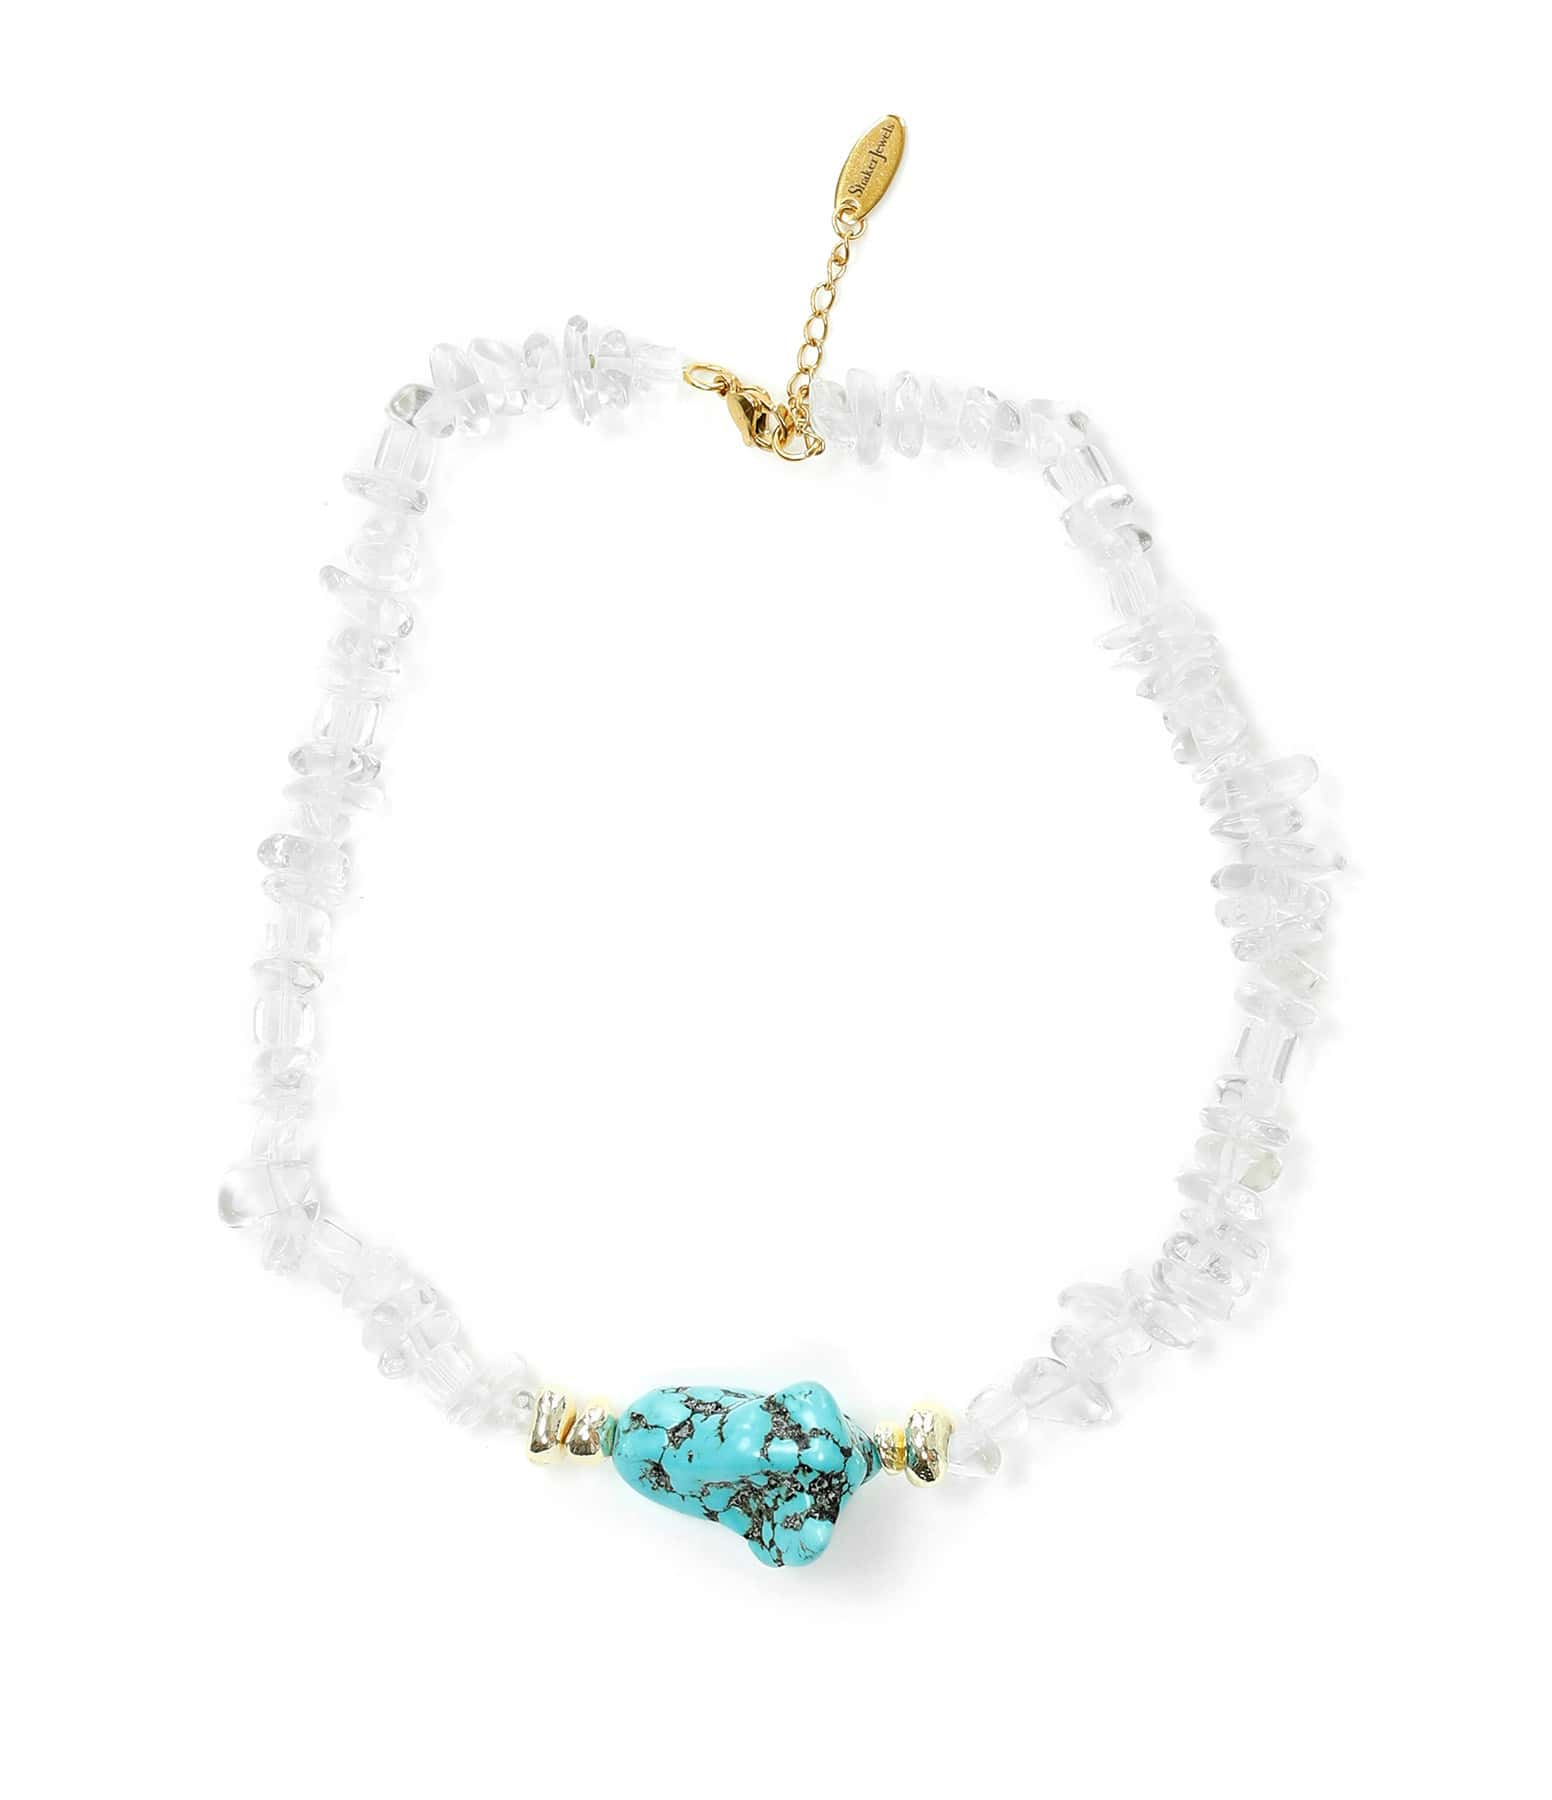 SHAKER JEWELS - Collier Plax Turquoise Plaqué Or